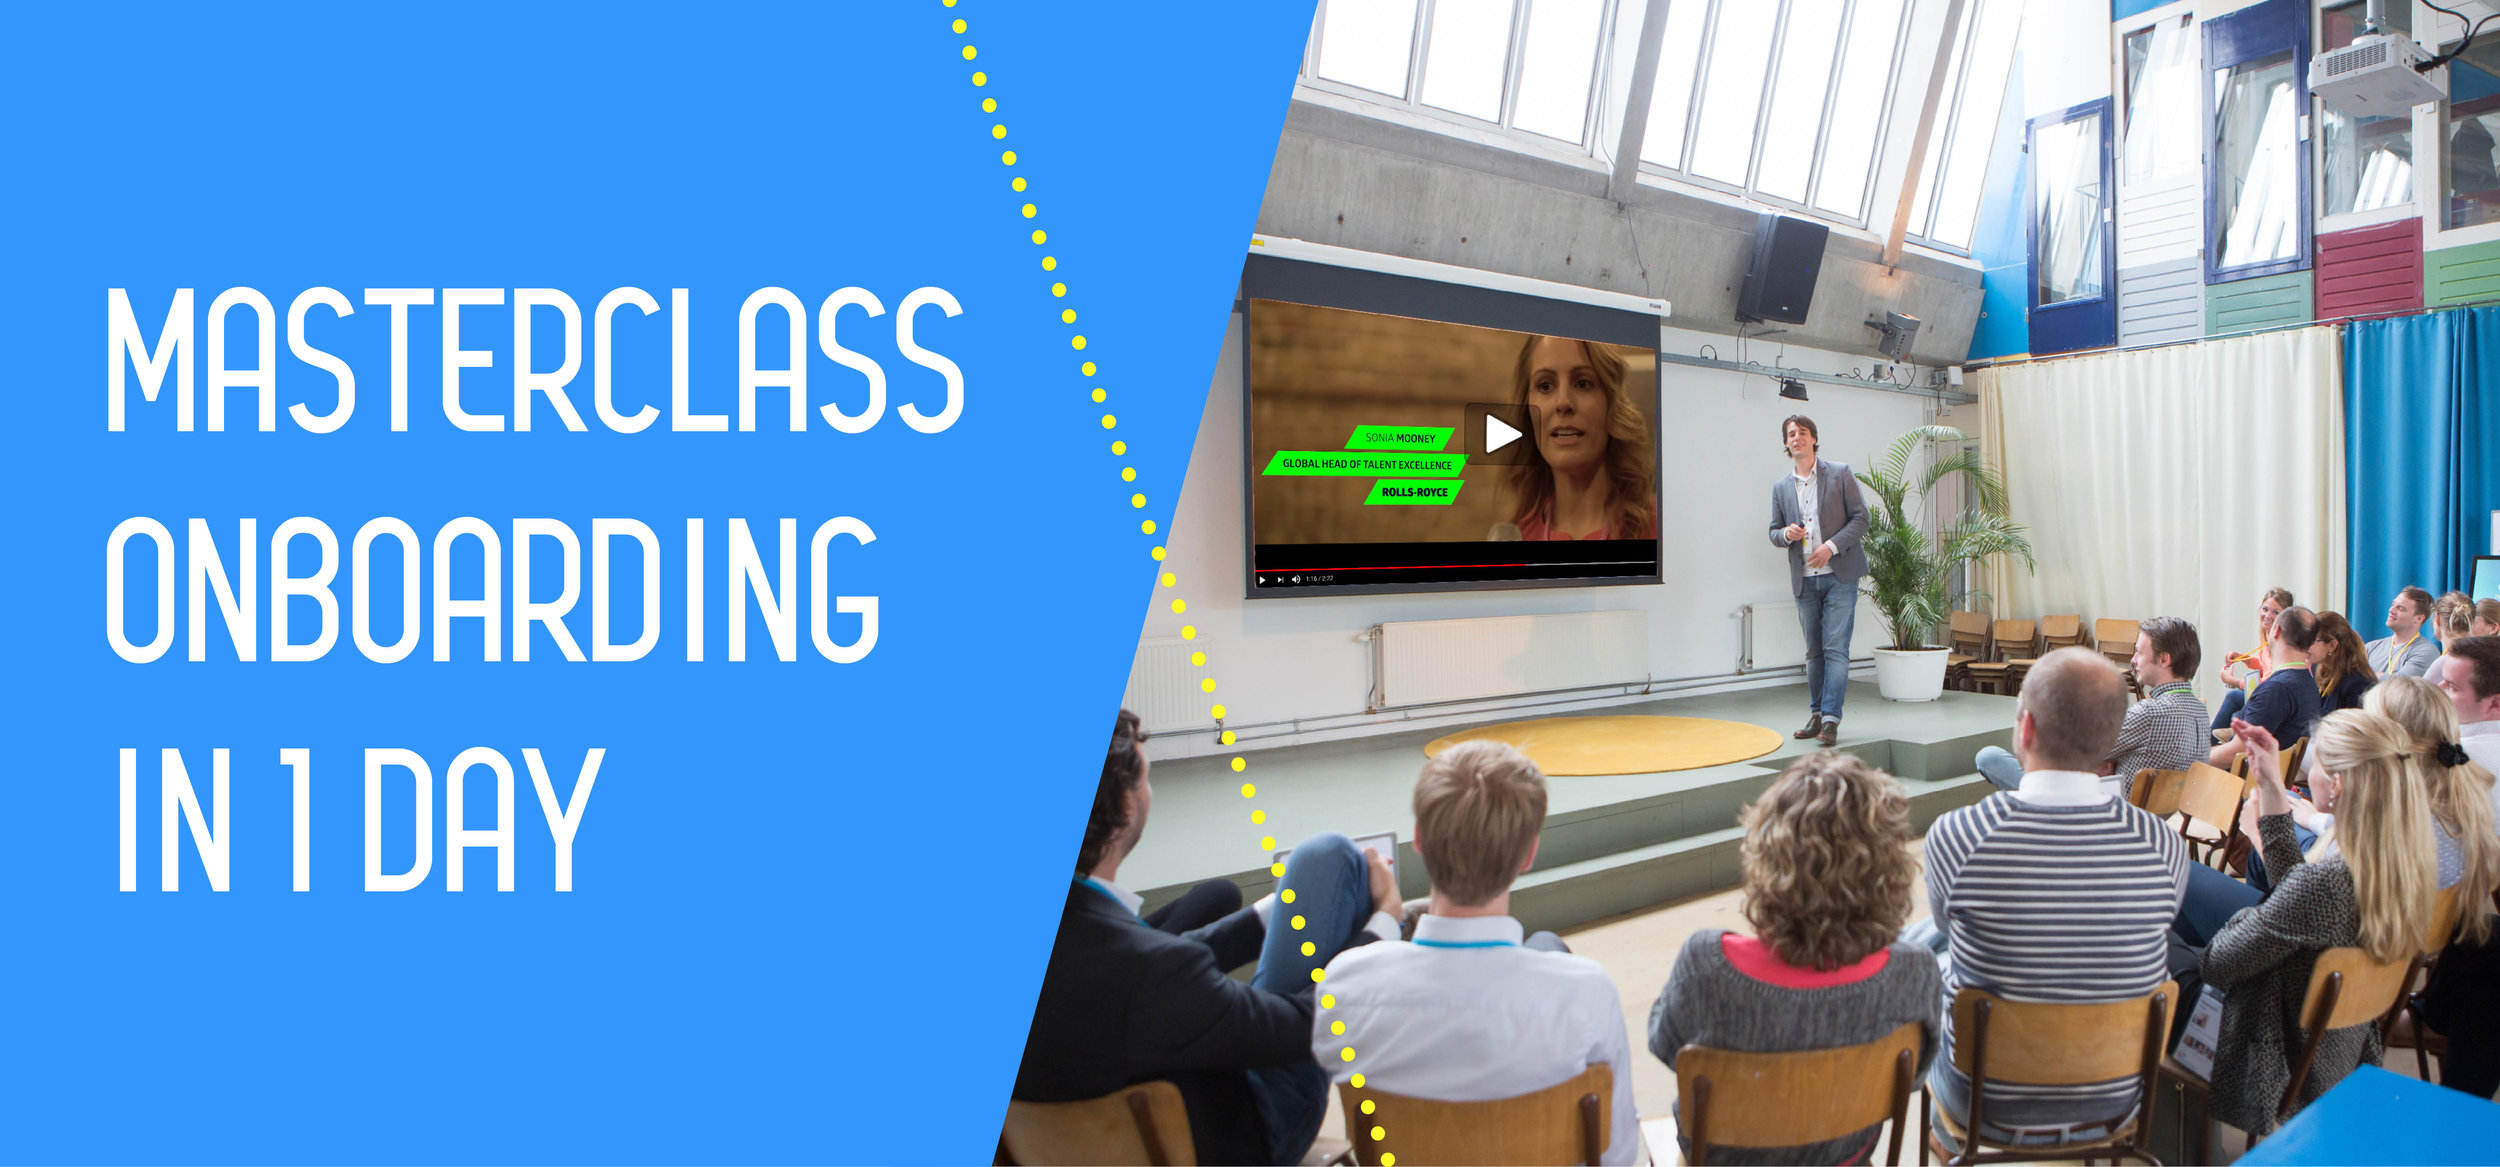 Masterclass Onboarding in 1 day - Washington DC